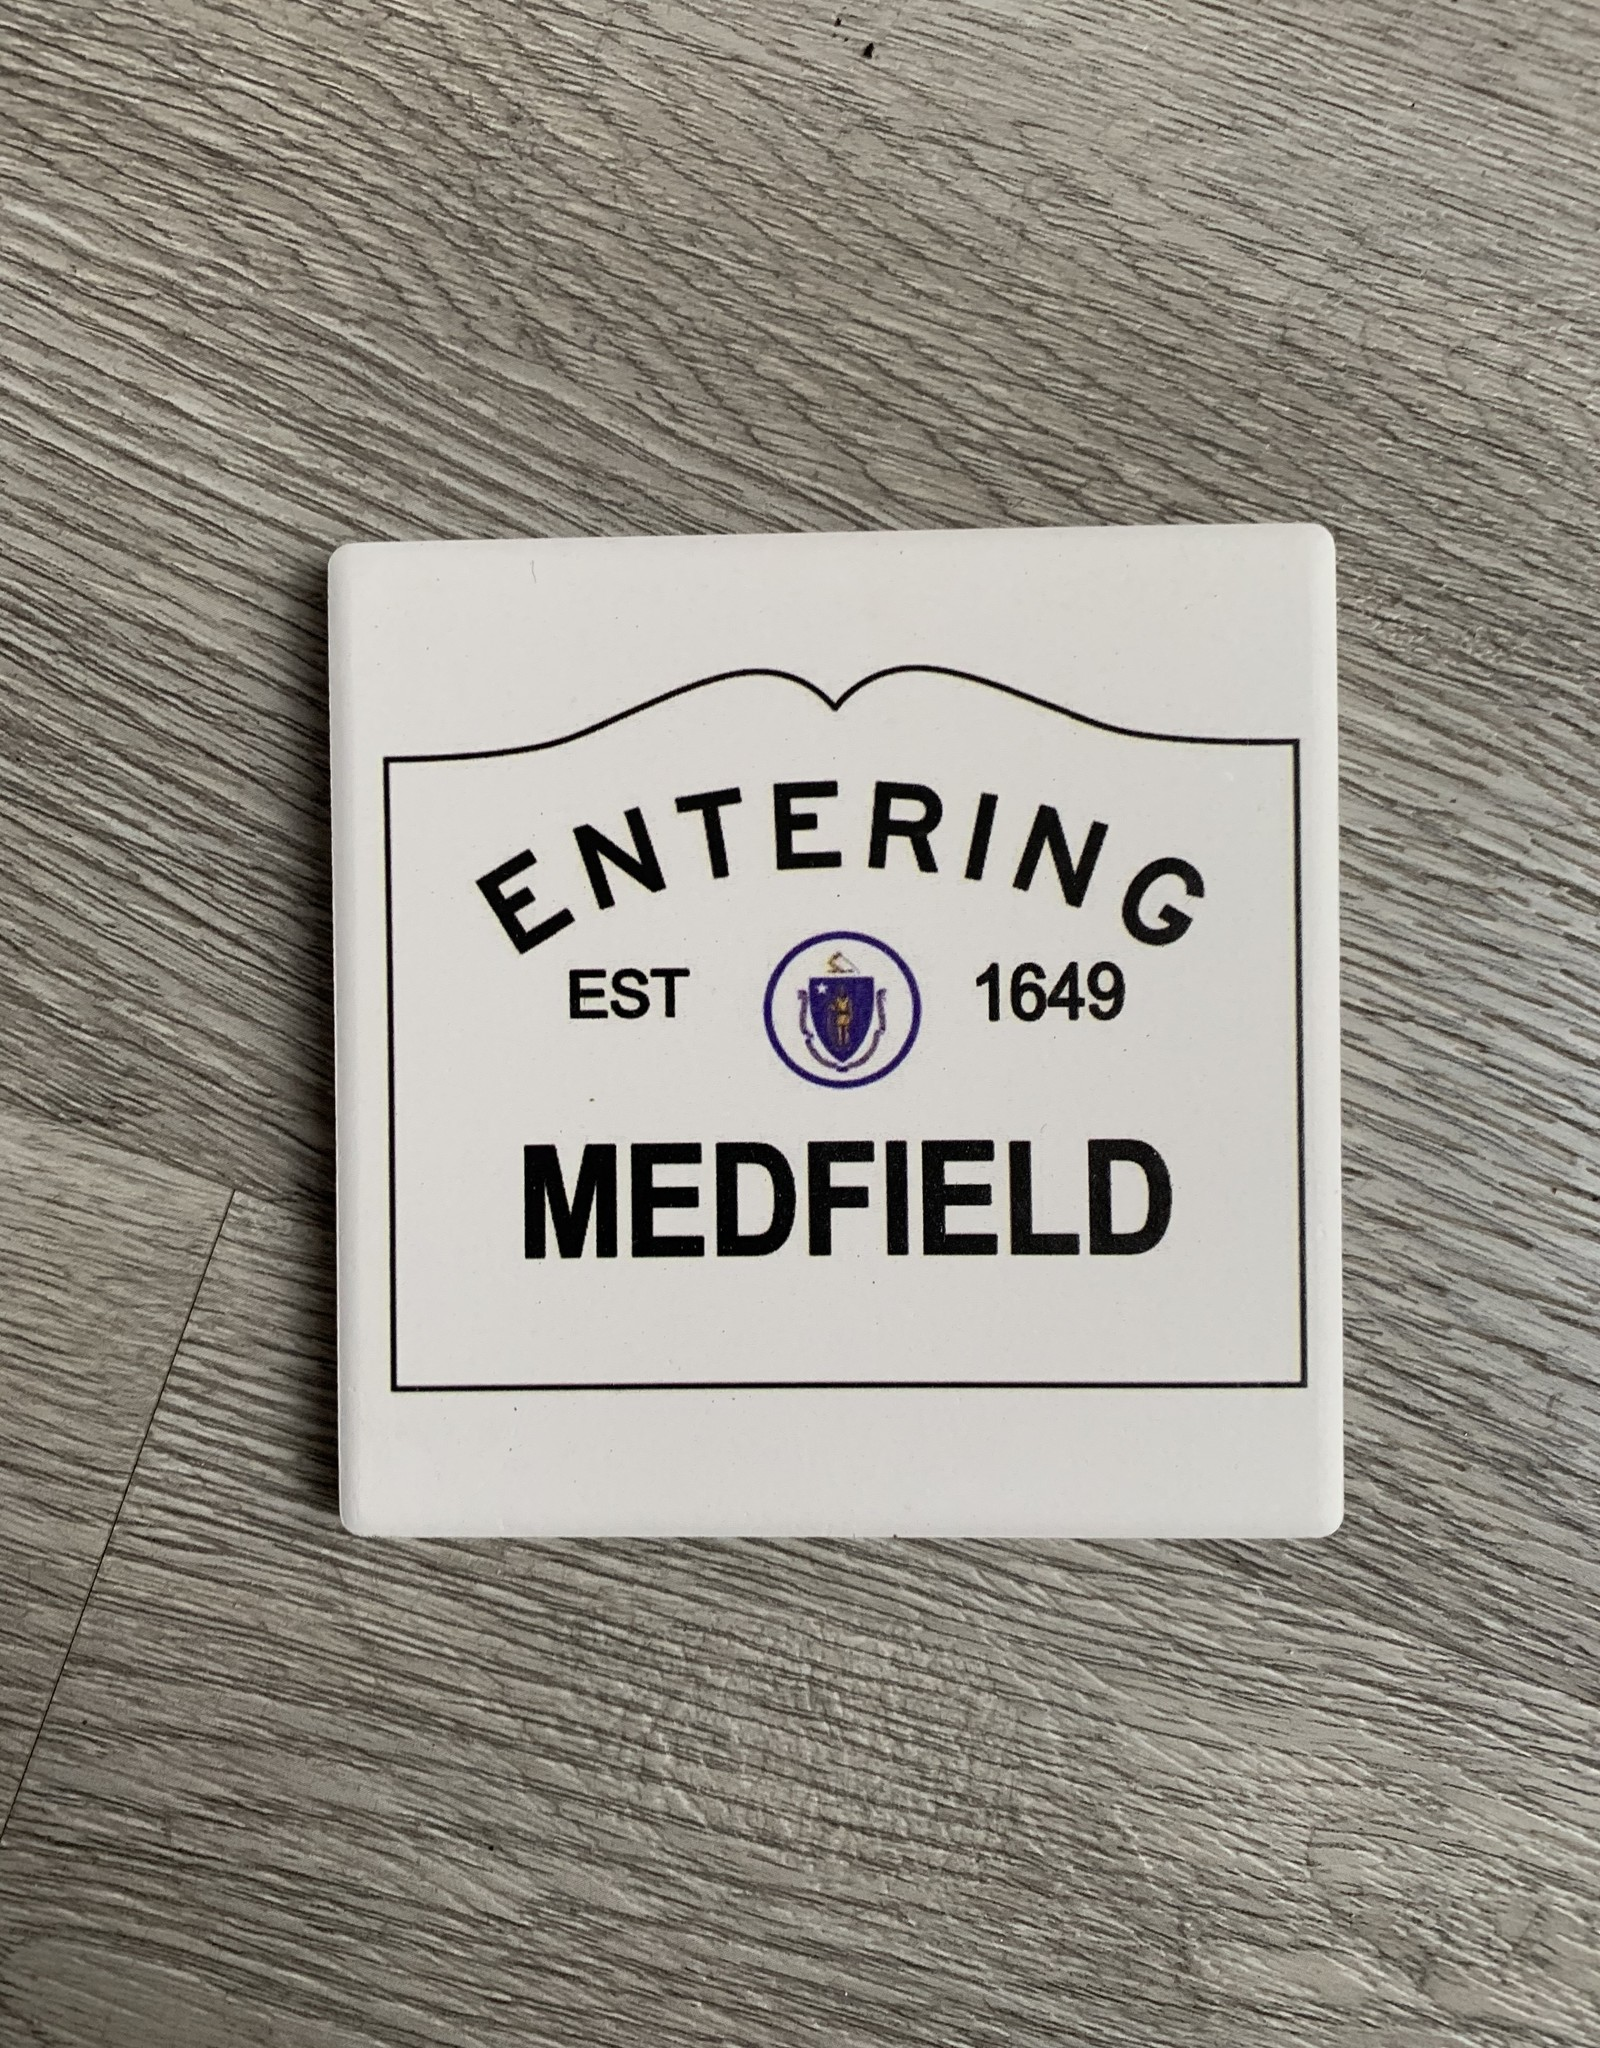 Paint the Town Paint the Town - Medfield 1649 Entering Sign Coaster